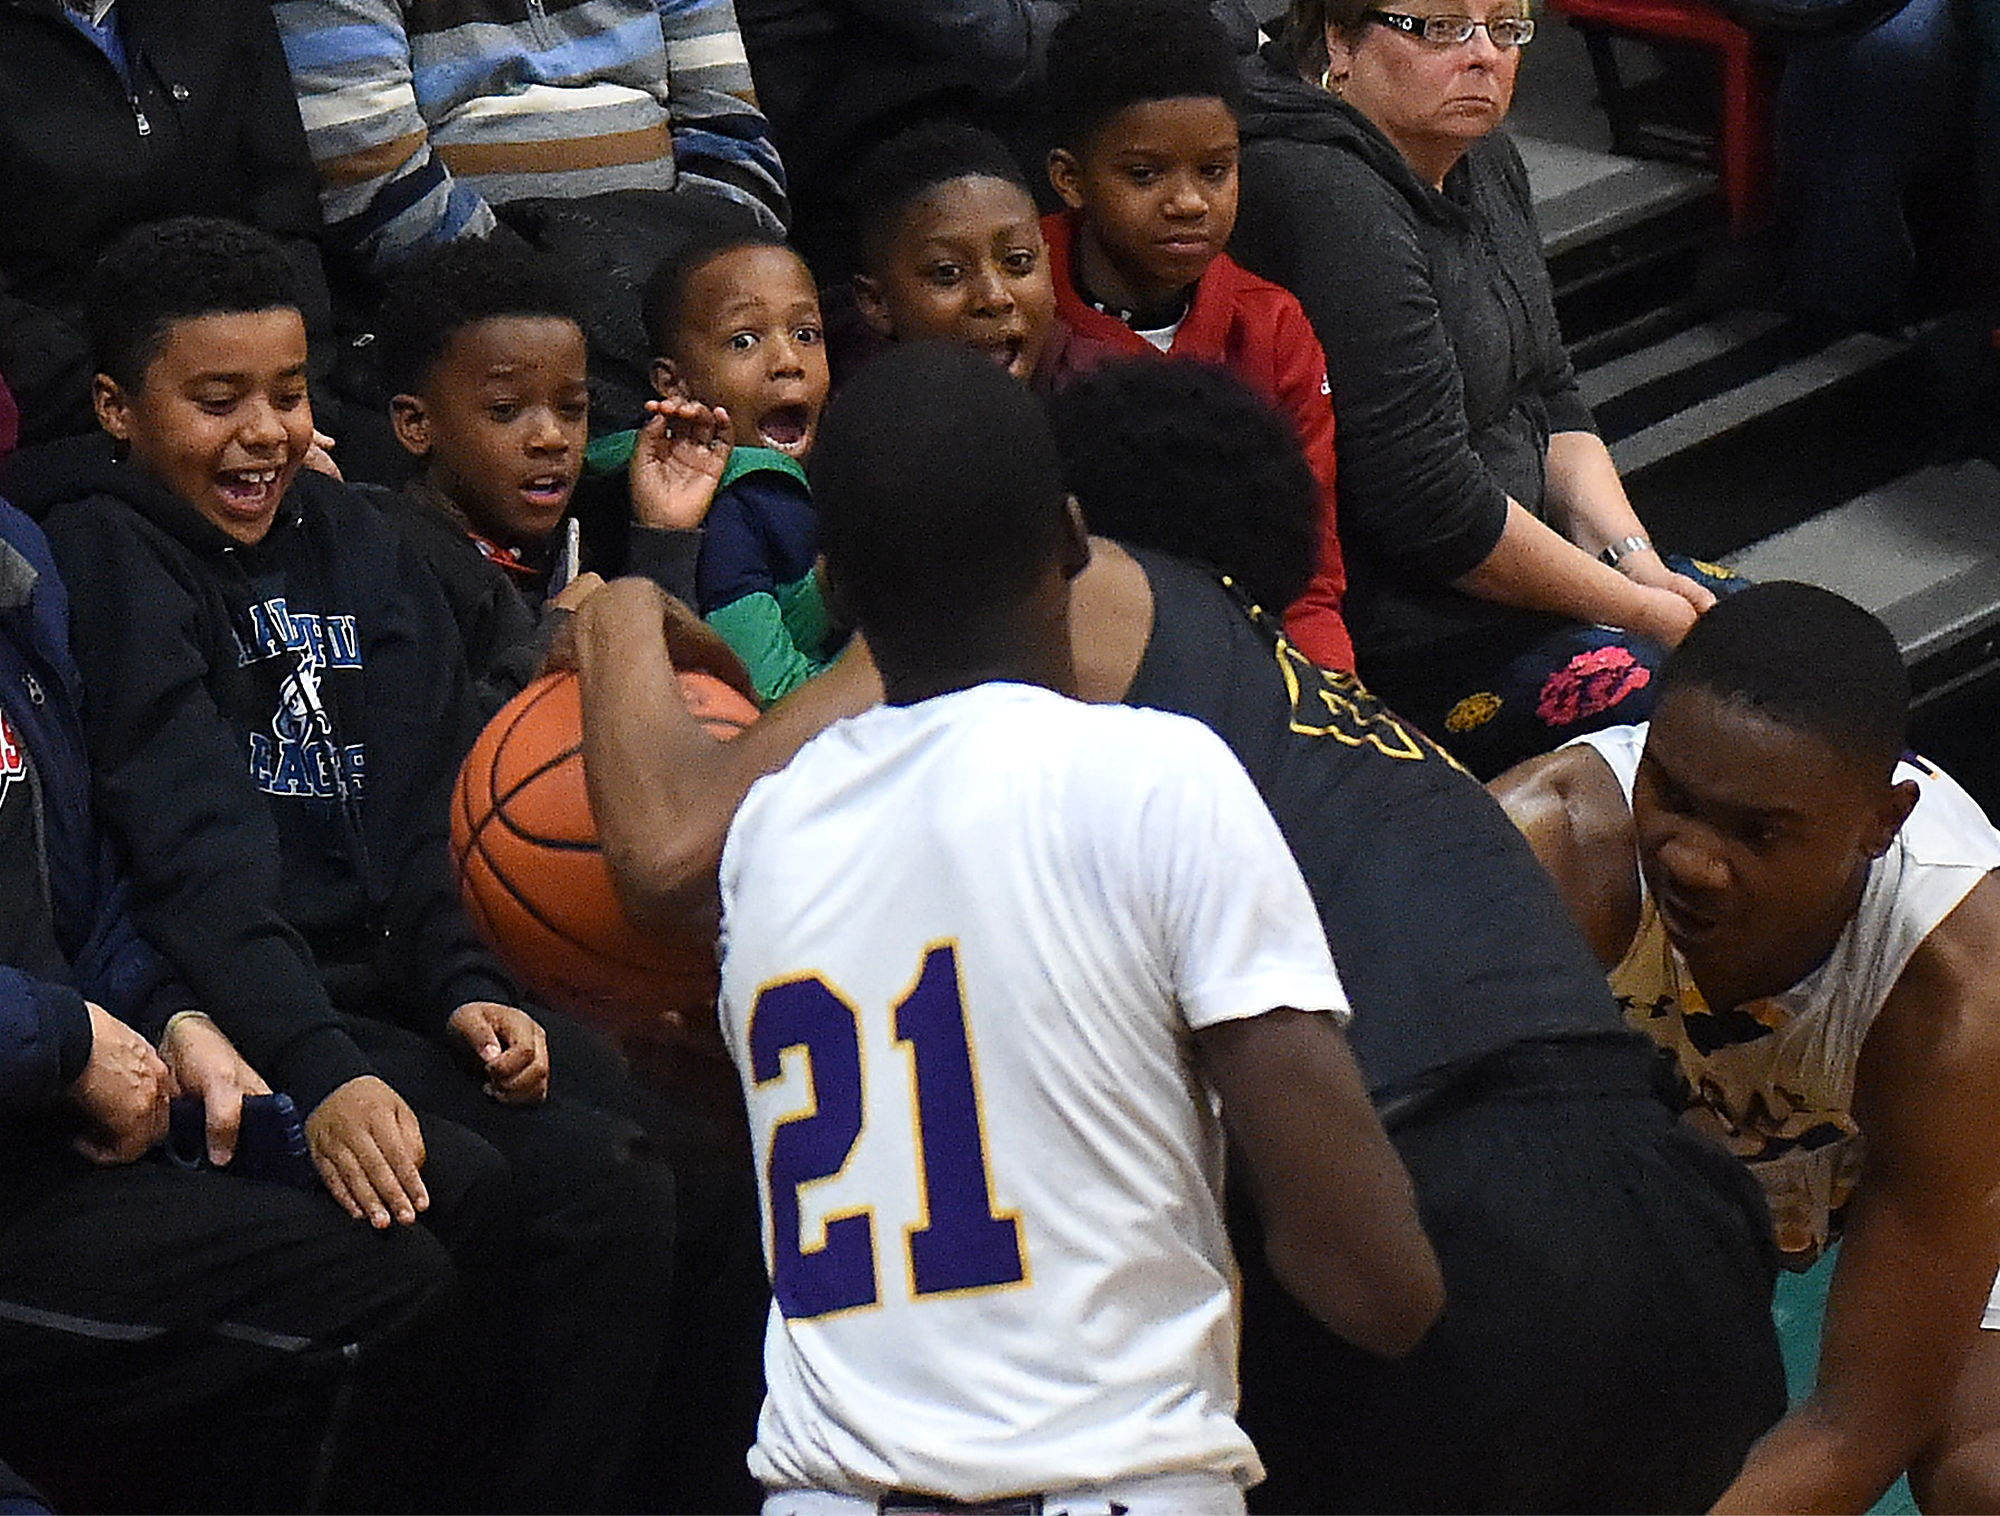 A group of boys react to players losing control of the ball in front of them during the District 12 AAAAA title game of Archbishop Wood against Martin Luther King High School at Father Judge High School in Northeast Philadelphia on Friday, March 3, 2017. Wood won the game 87-51.